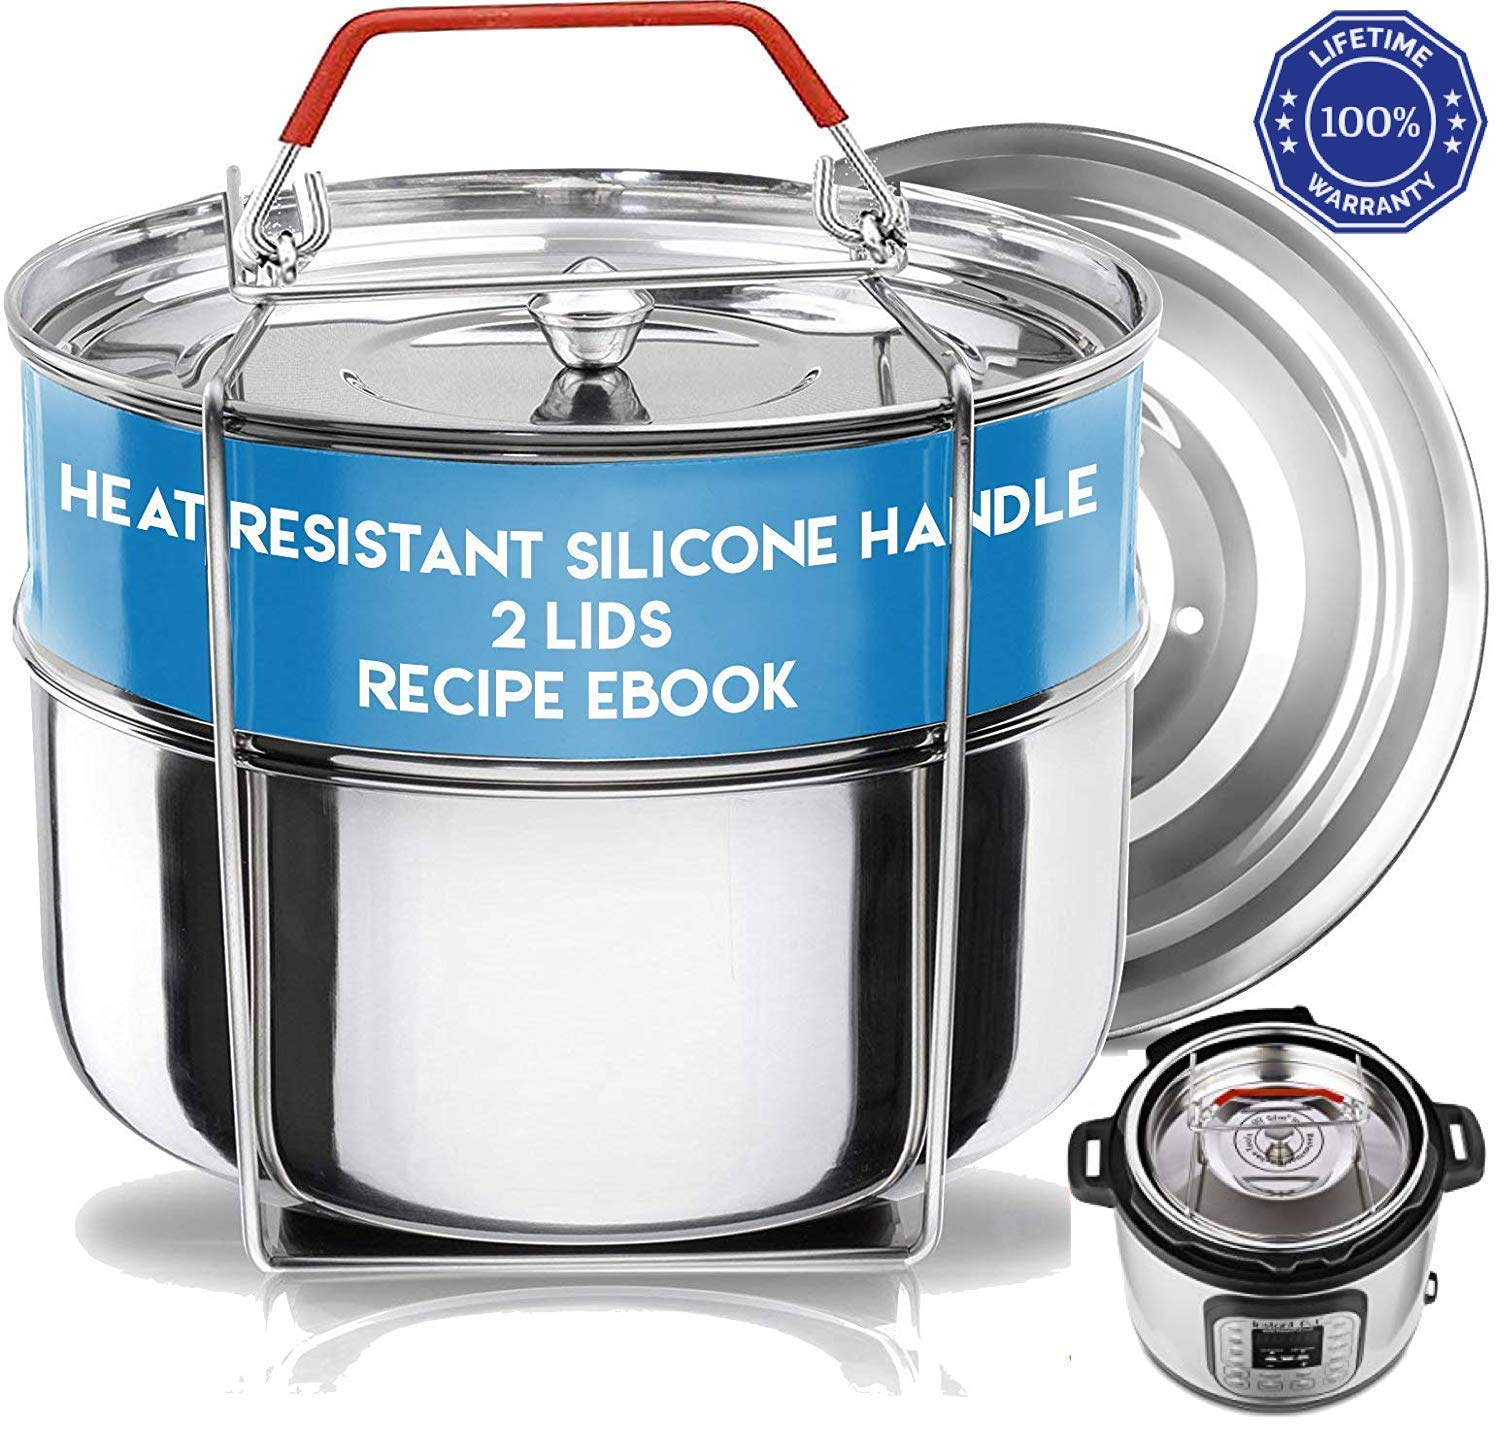 Stackable Instant Pot Insert - Pressure Cooker Accessories- Steamer Inserts Pans -Instant Pot Accessories 6 Qt | 2 Lids- Food Steamer w/Sling for Baking, Reheating Recipe e-Book & Safety Handle by SILVA INC RESTAURANT/KITCHEN TOOLS